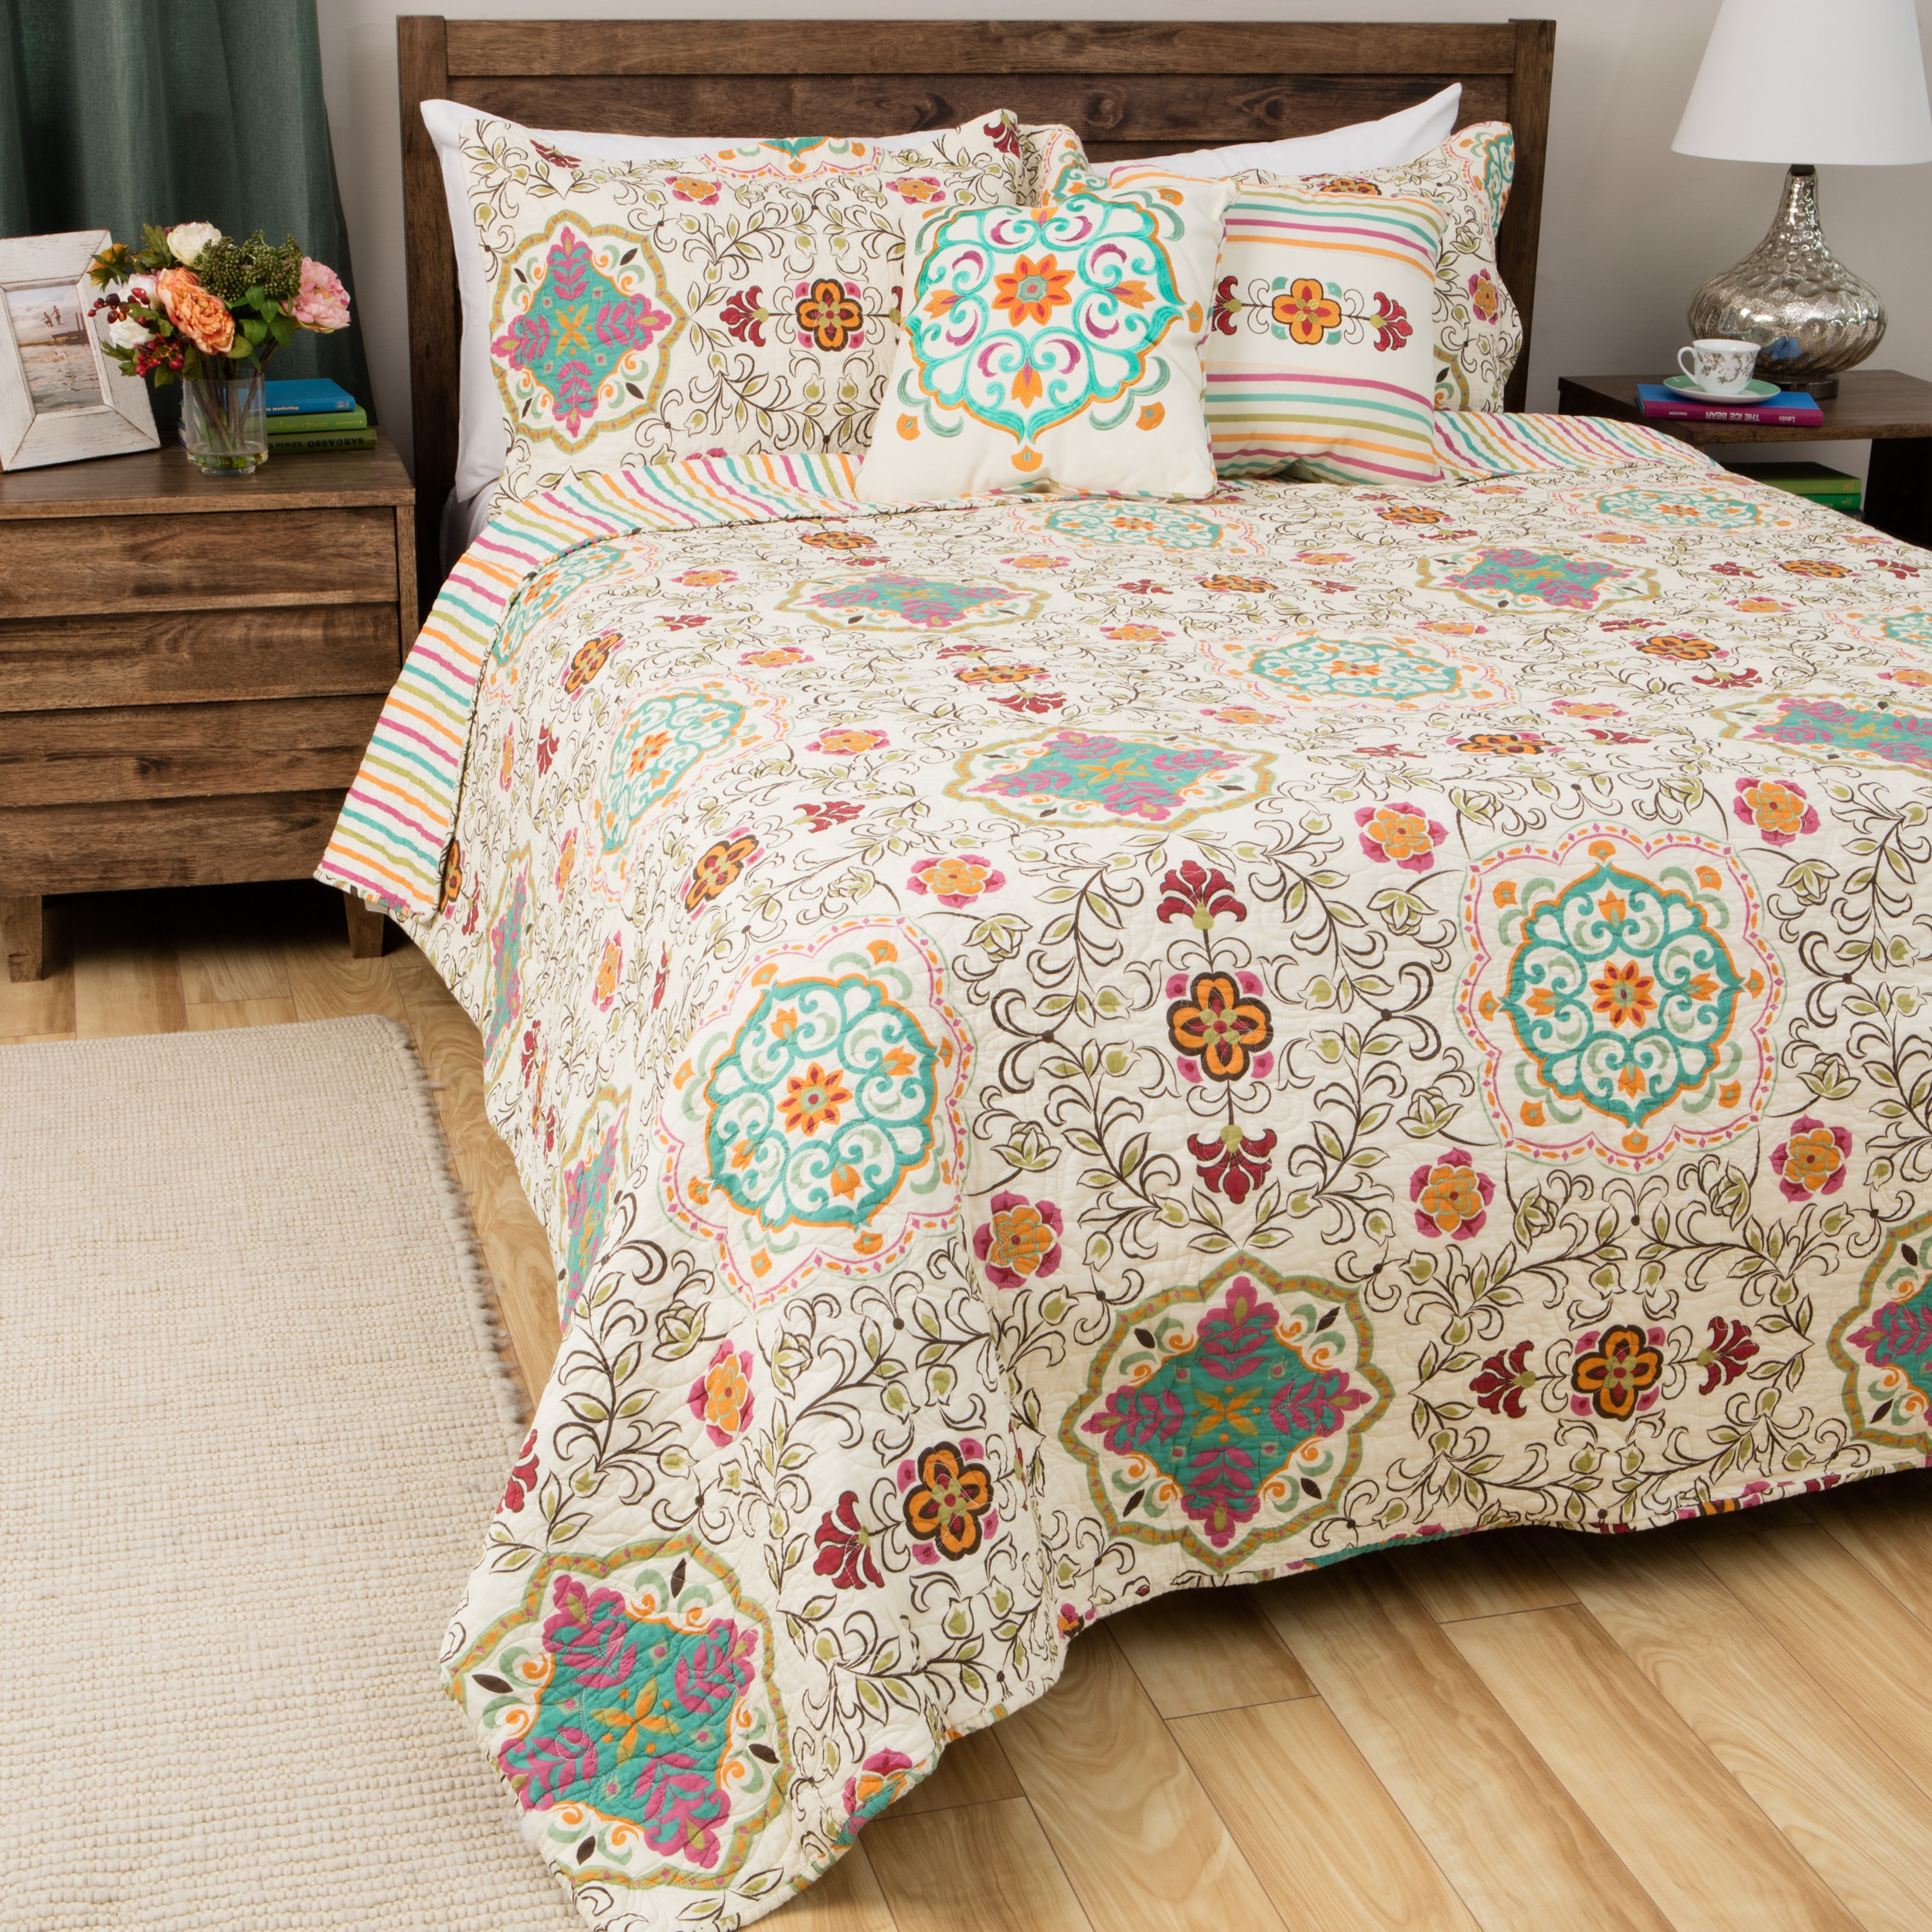 Esprit Bedding Sheet Set Geo Astec Super King Size Shop Greenland Home Fashions Spice Piece Quilt Ships To Canada 2500x2500